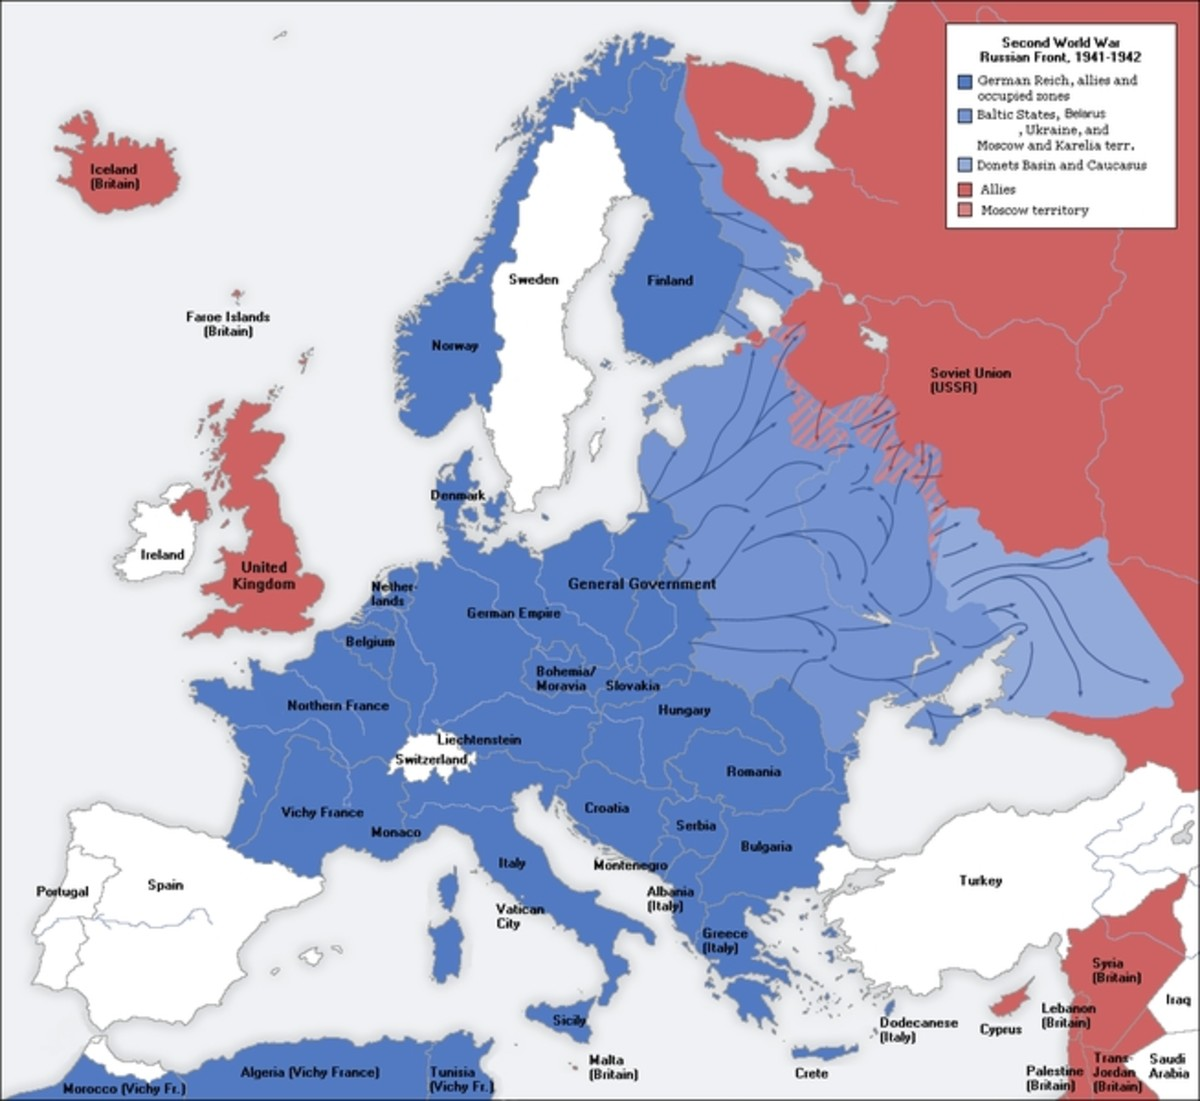 WW2: Switzerland (white) surrounded by territory controlled by the Axis Powers (blue) from 1940 to 1944.